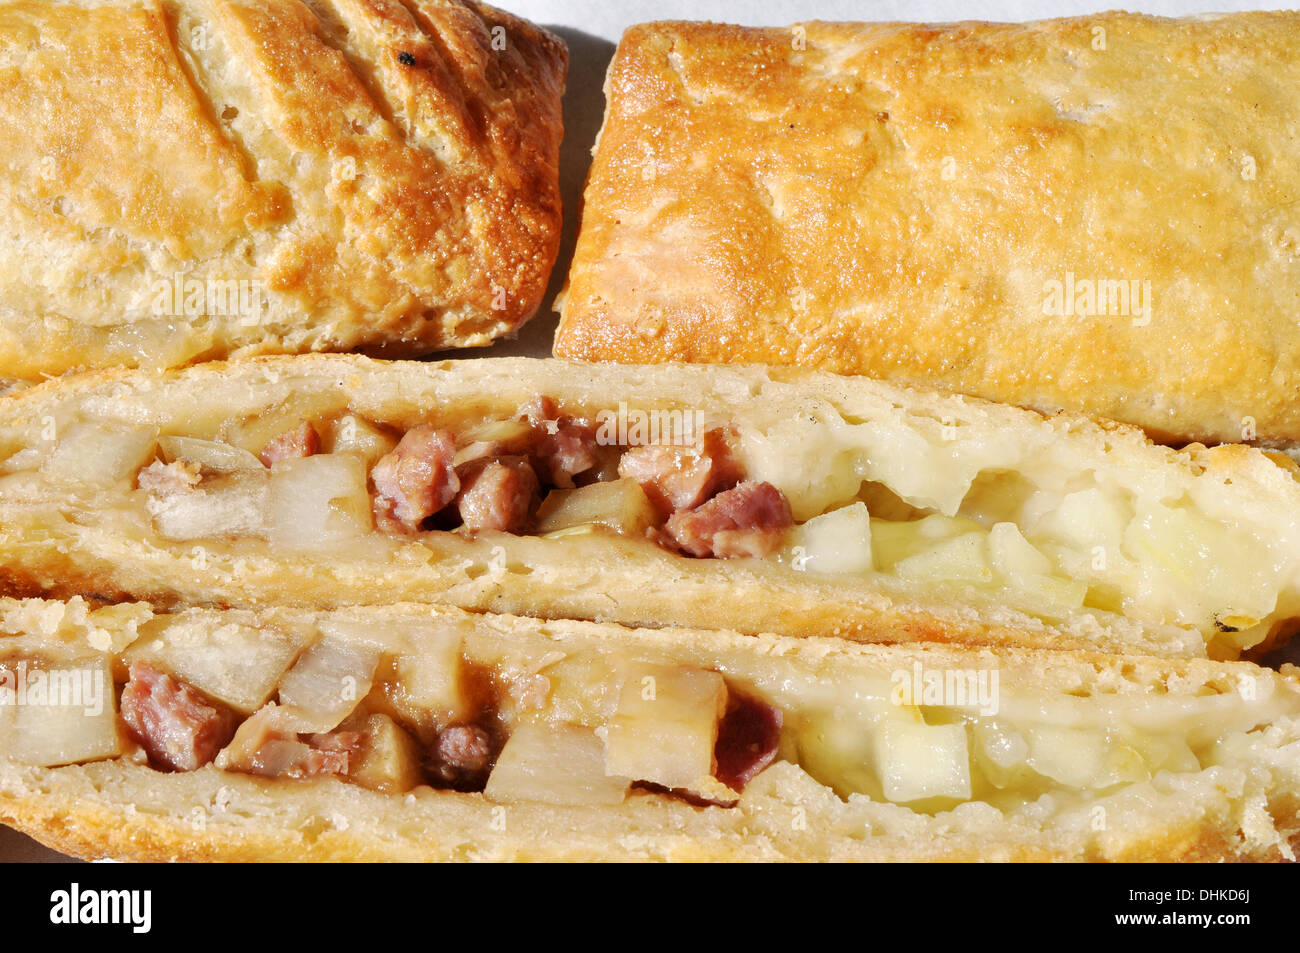 Bedfordshire clanger showing ingredients Stock Photo ...